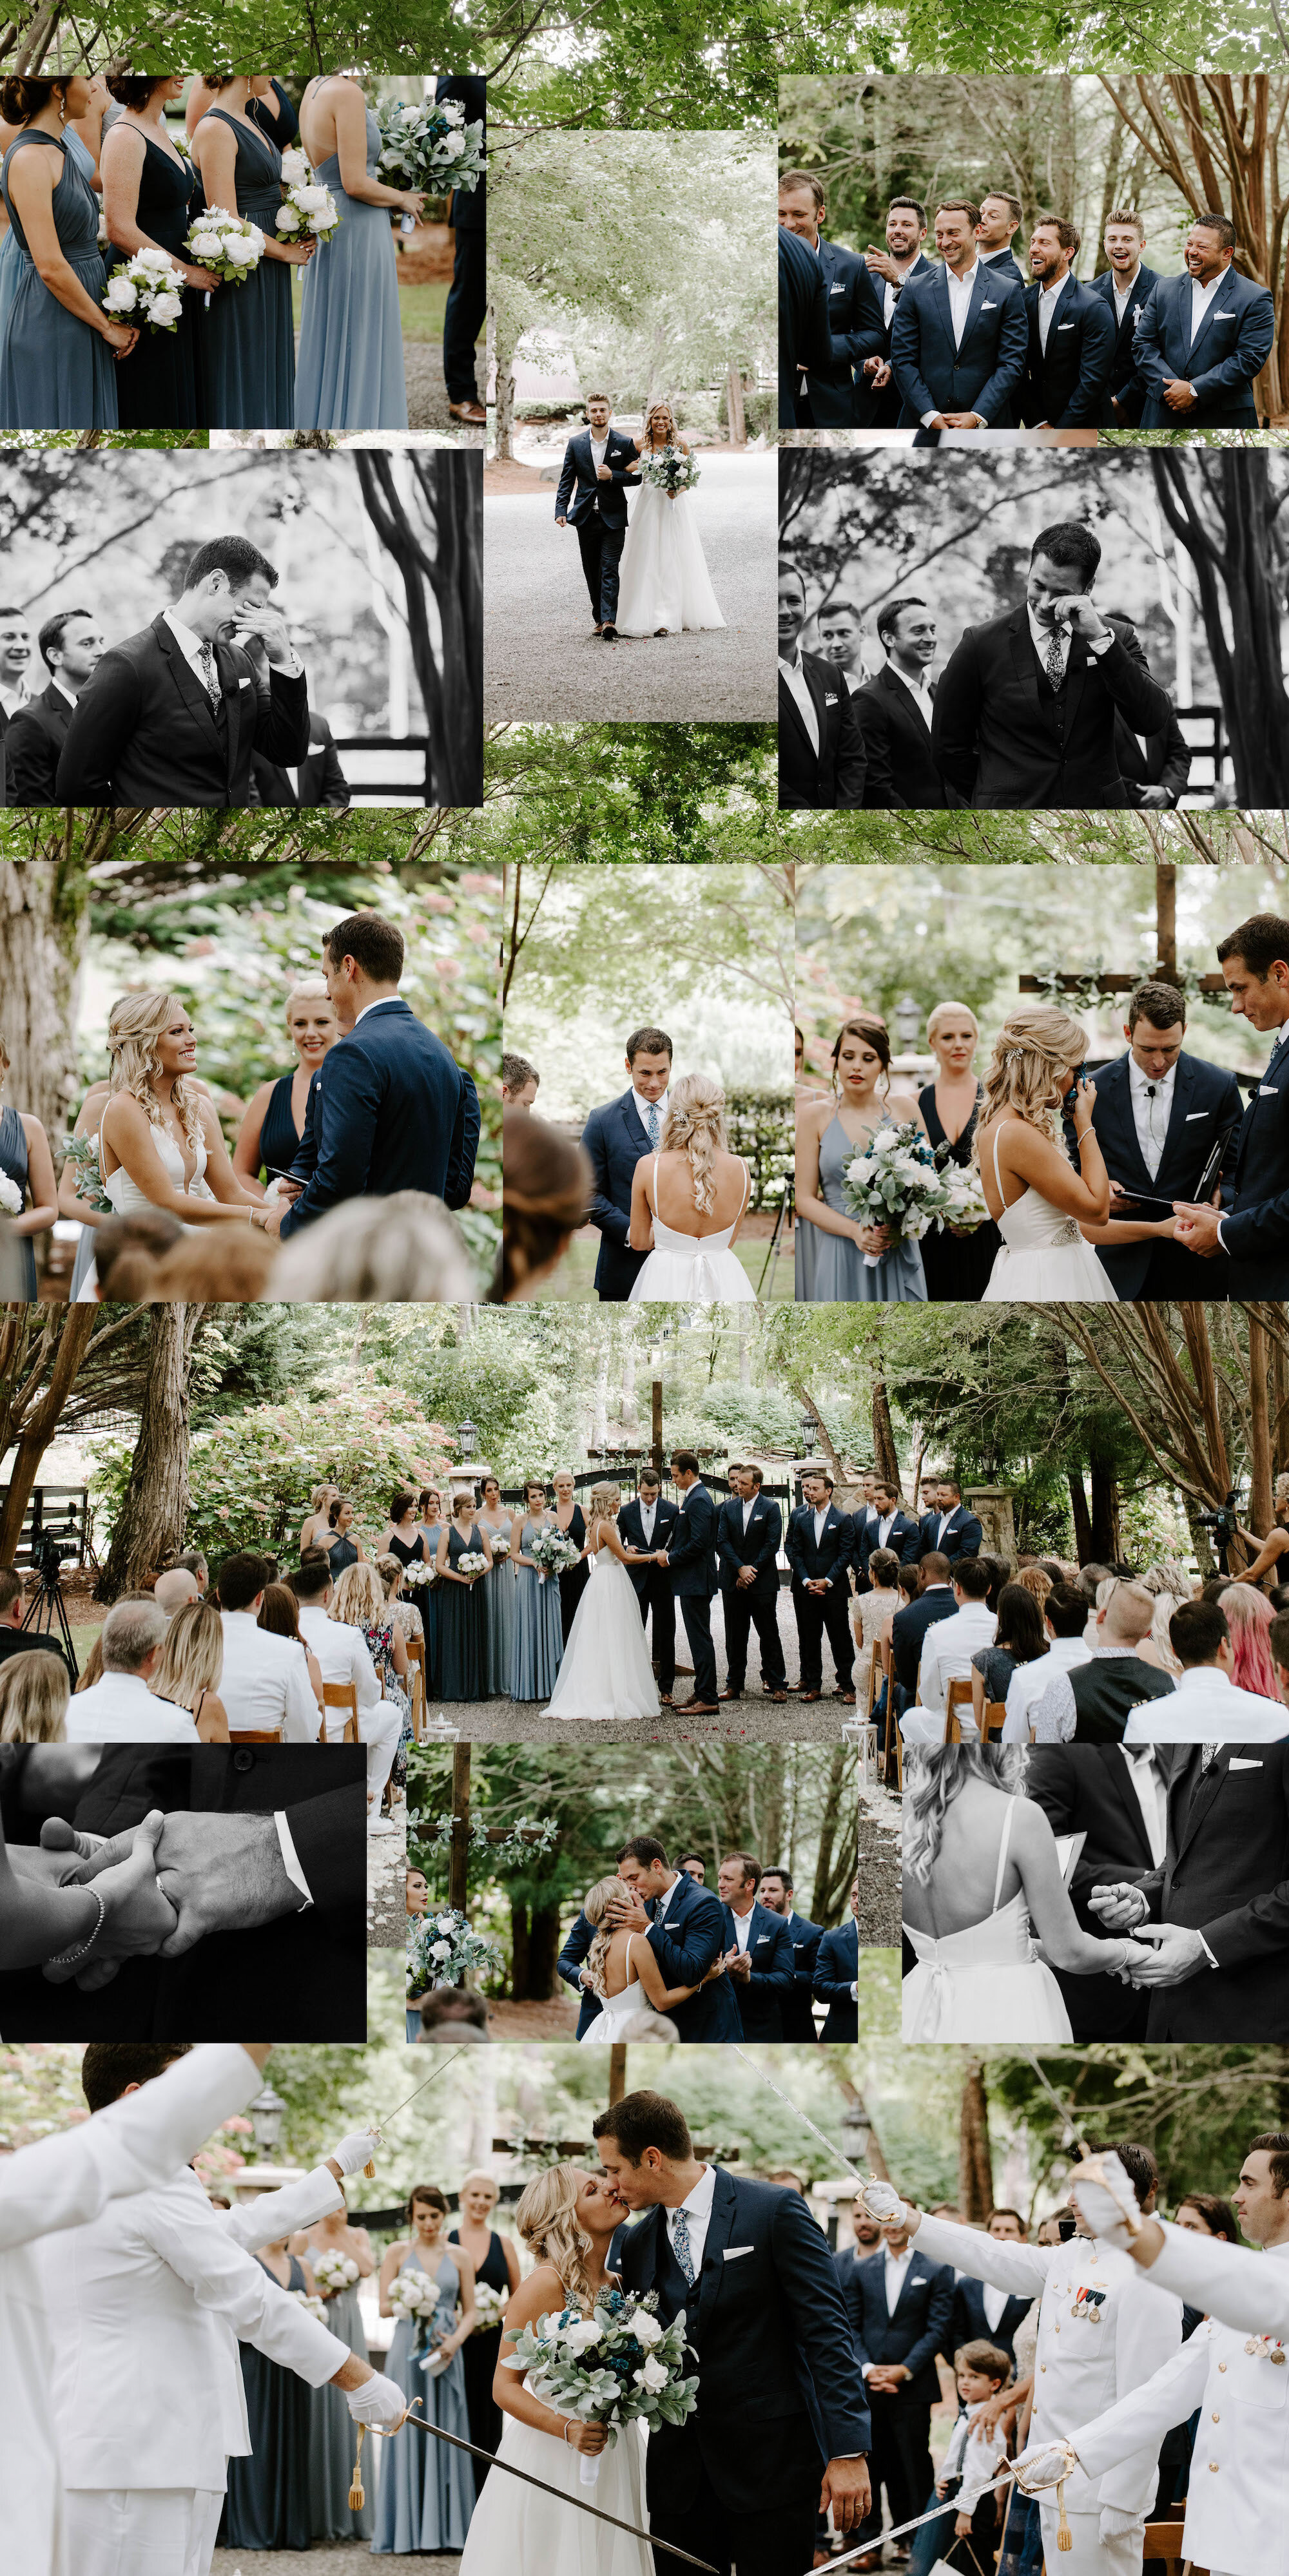 hawksdene-green-summer-wedding3-ceremony.jpg